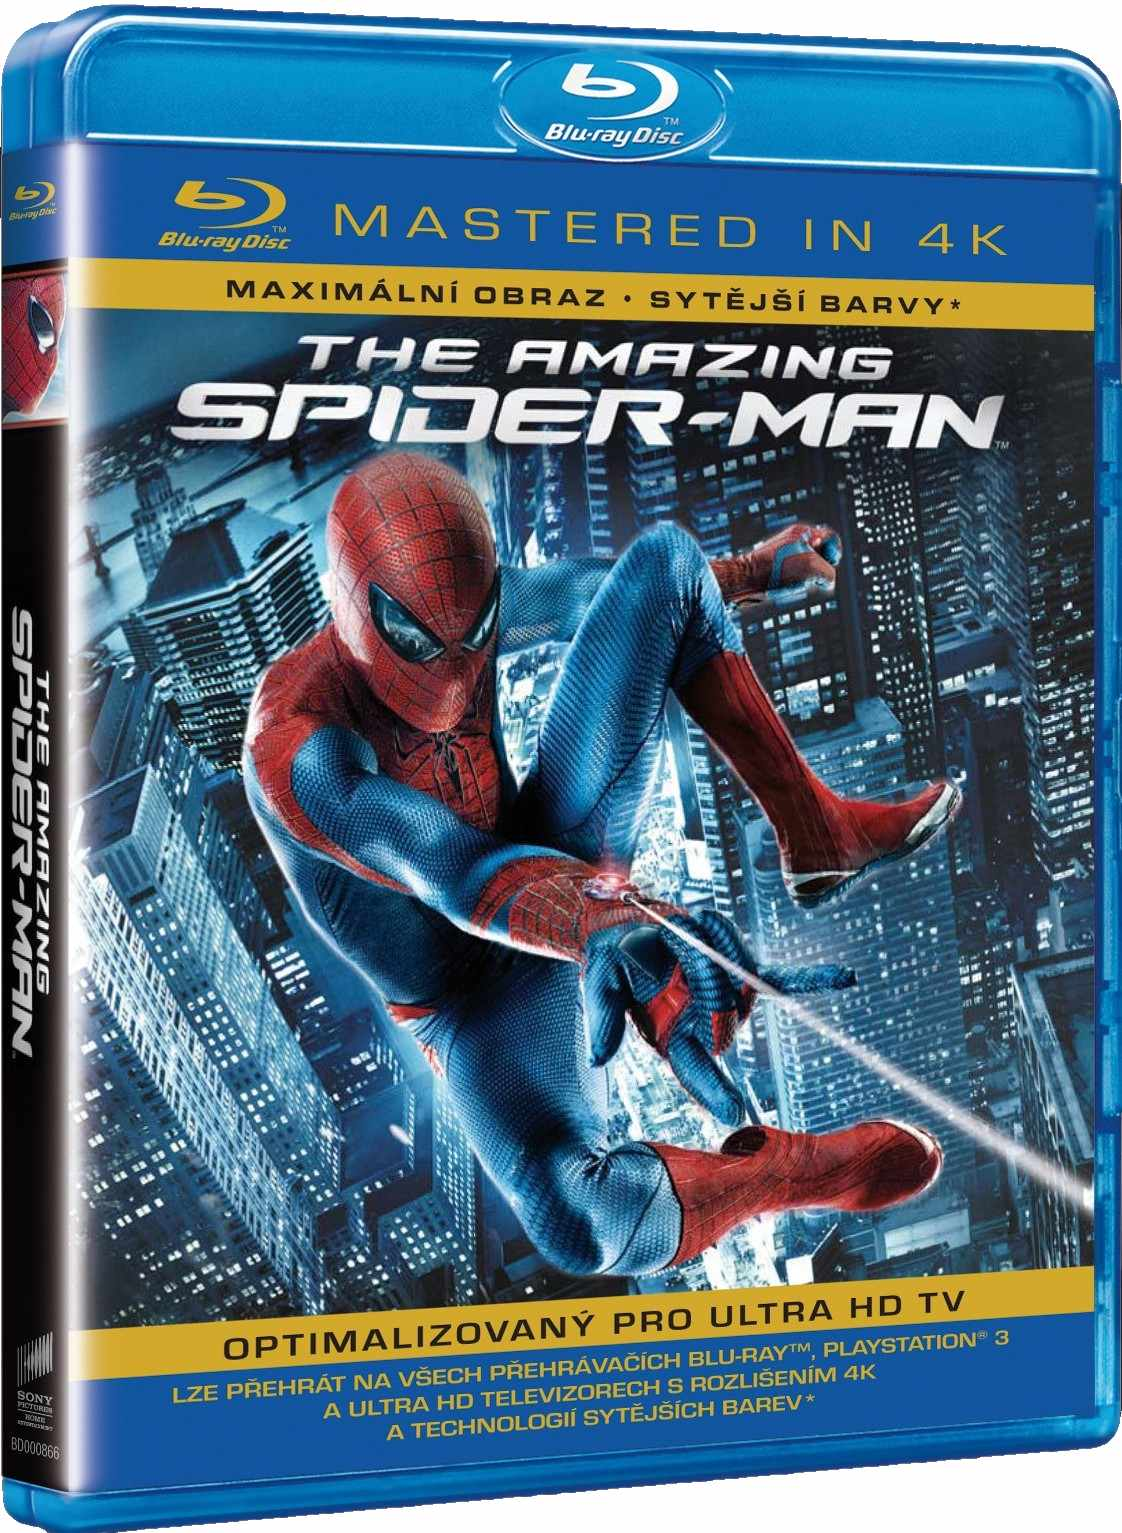 AMAZING SPIDER-MAN - Blu-ray (Mastered in 4K)